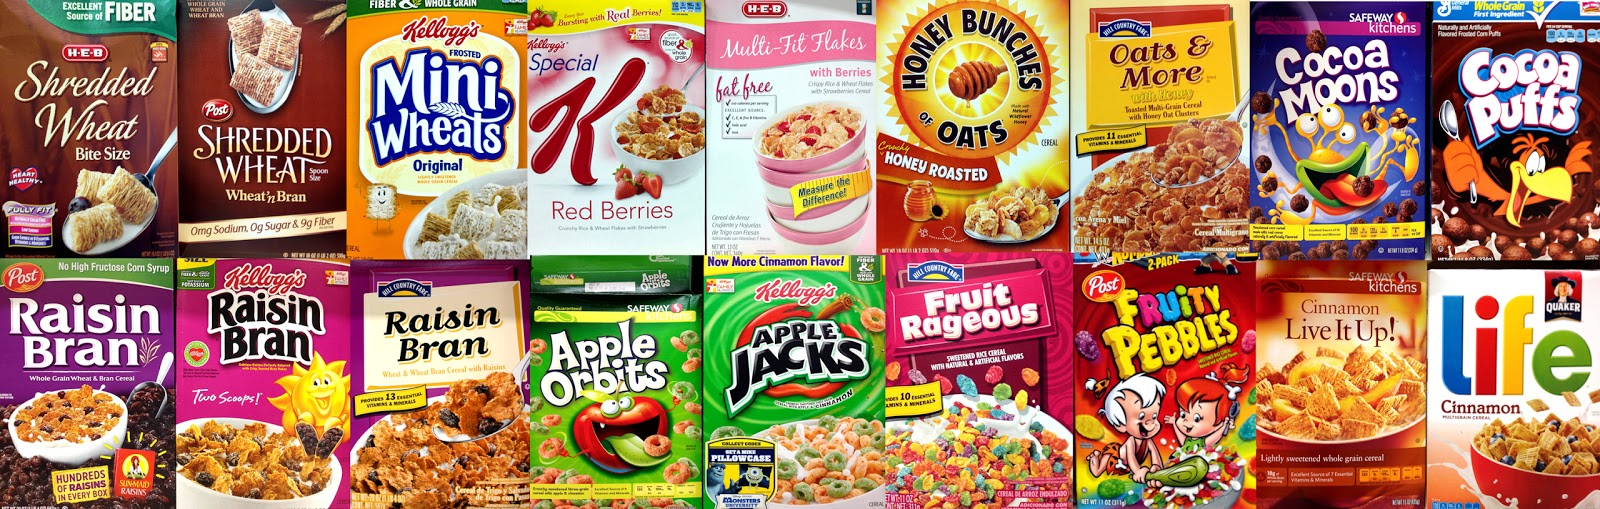 Sep 26,  · Post Consumer Brands is suing General Mills for patent infringement of its bagged cereal displays, pitting two Twin Cities breakfast giants against one another.